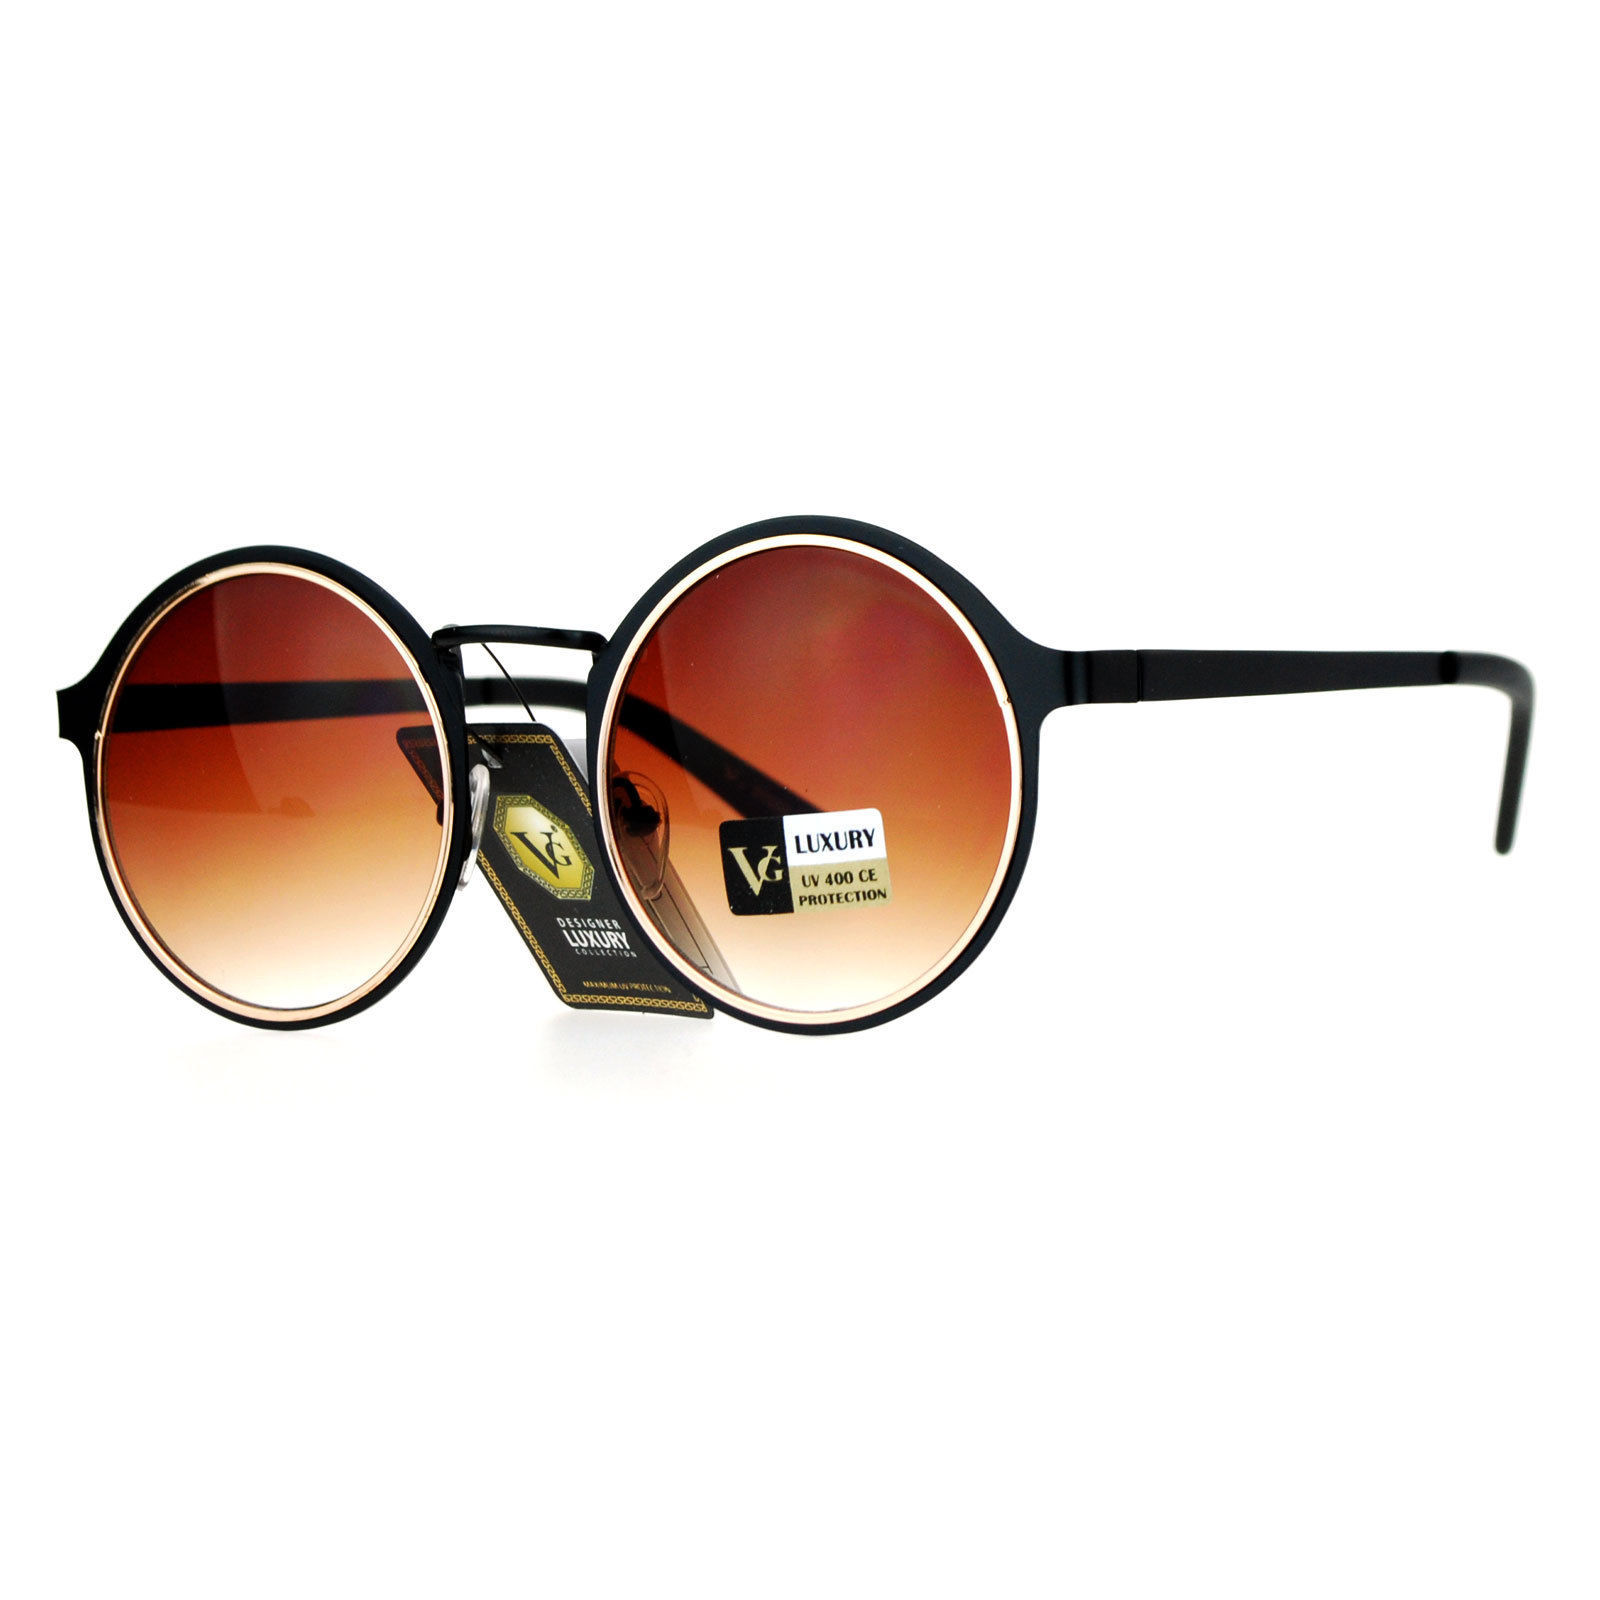 Womens Fashion Sunglasses Round Layered Circle Metal Frame UV 400